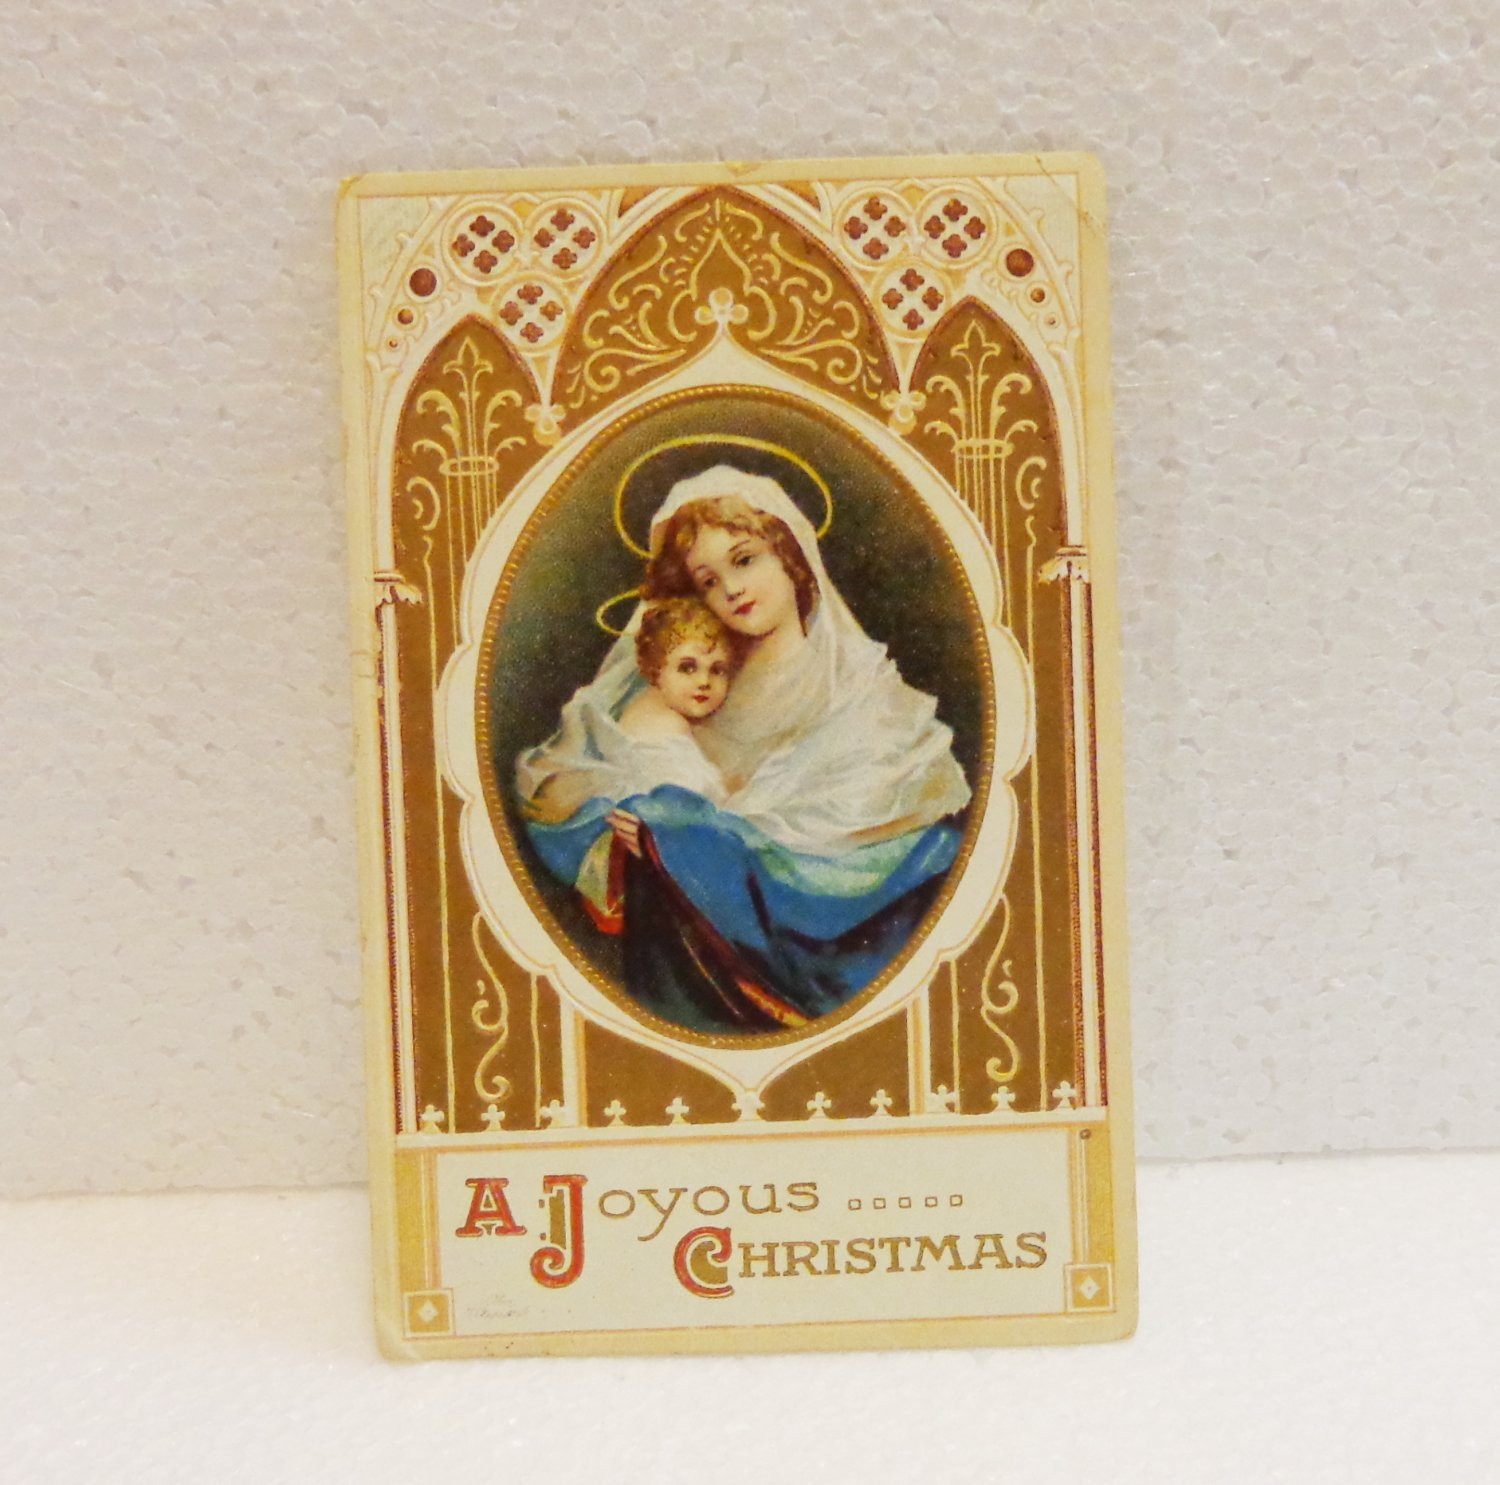 A Joyous Christmas Virgin and child vintage postcard 1913 used PC AL1521